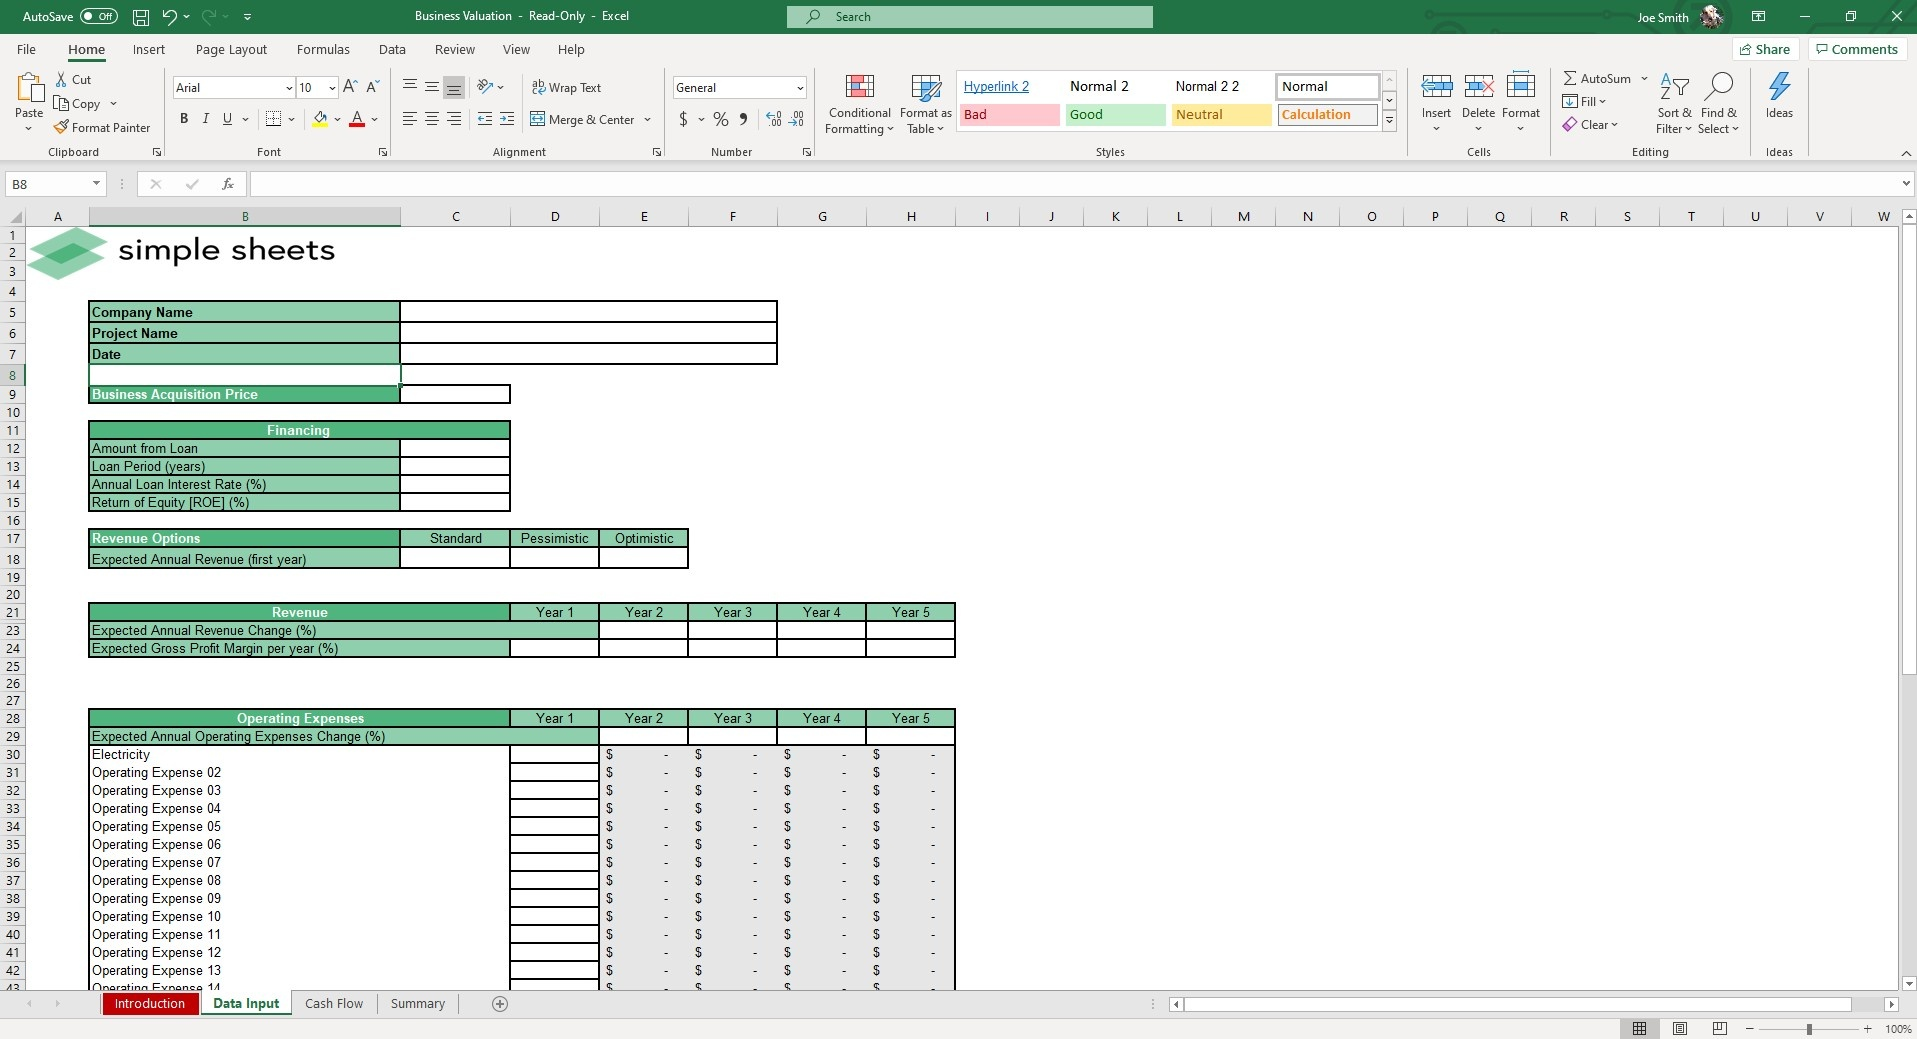 Input Data and the spreadsheet will begin to calculate the valuation based on the model of your choice.